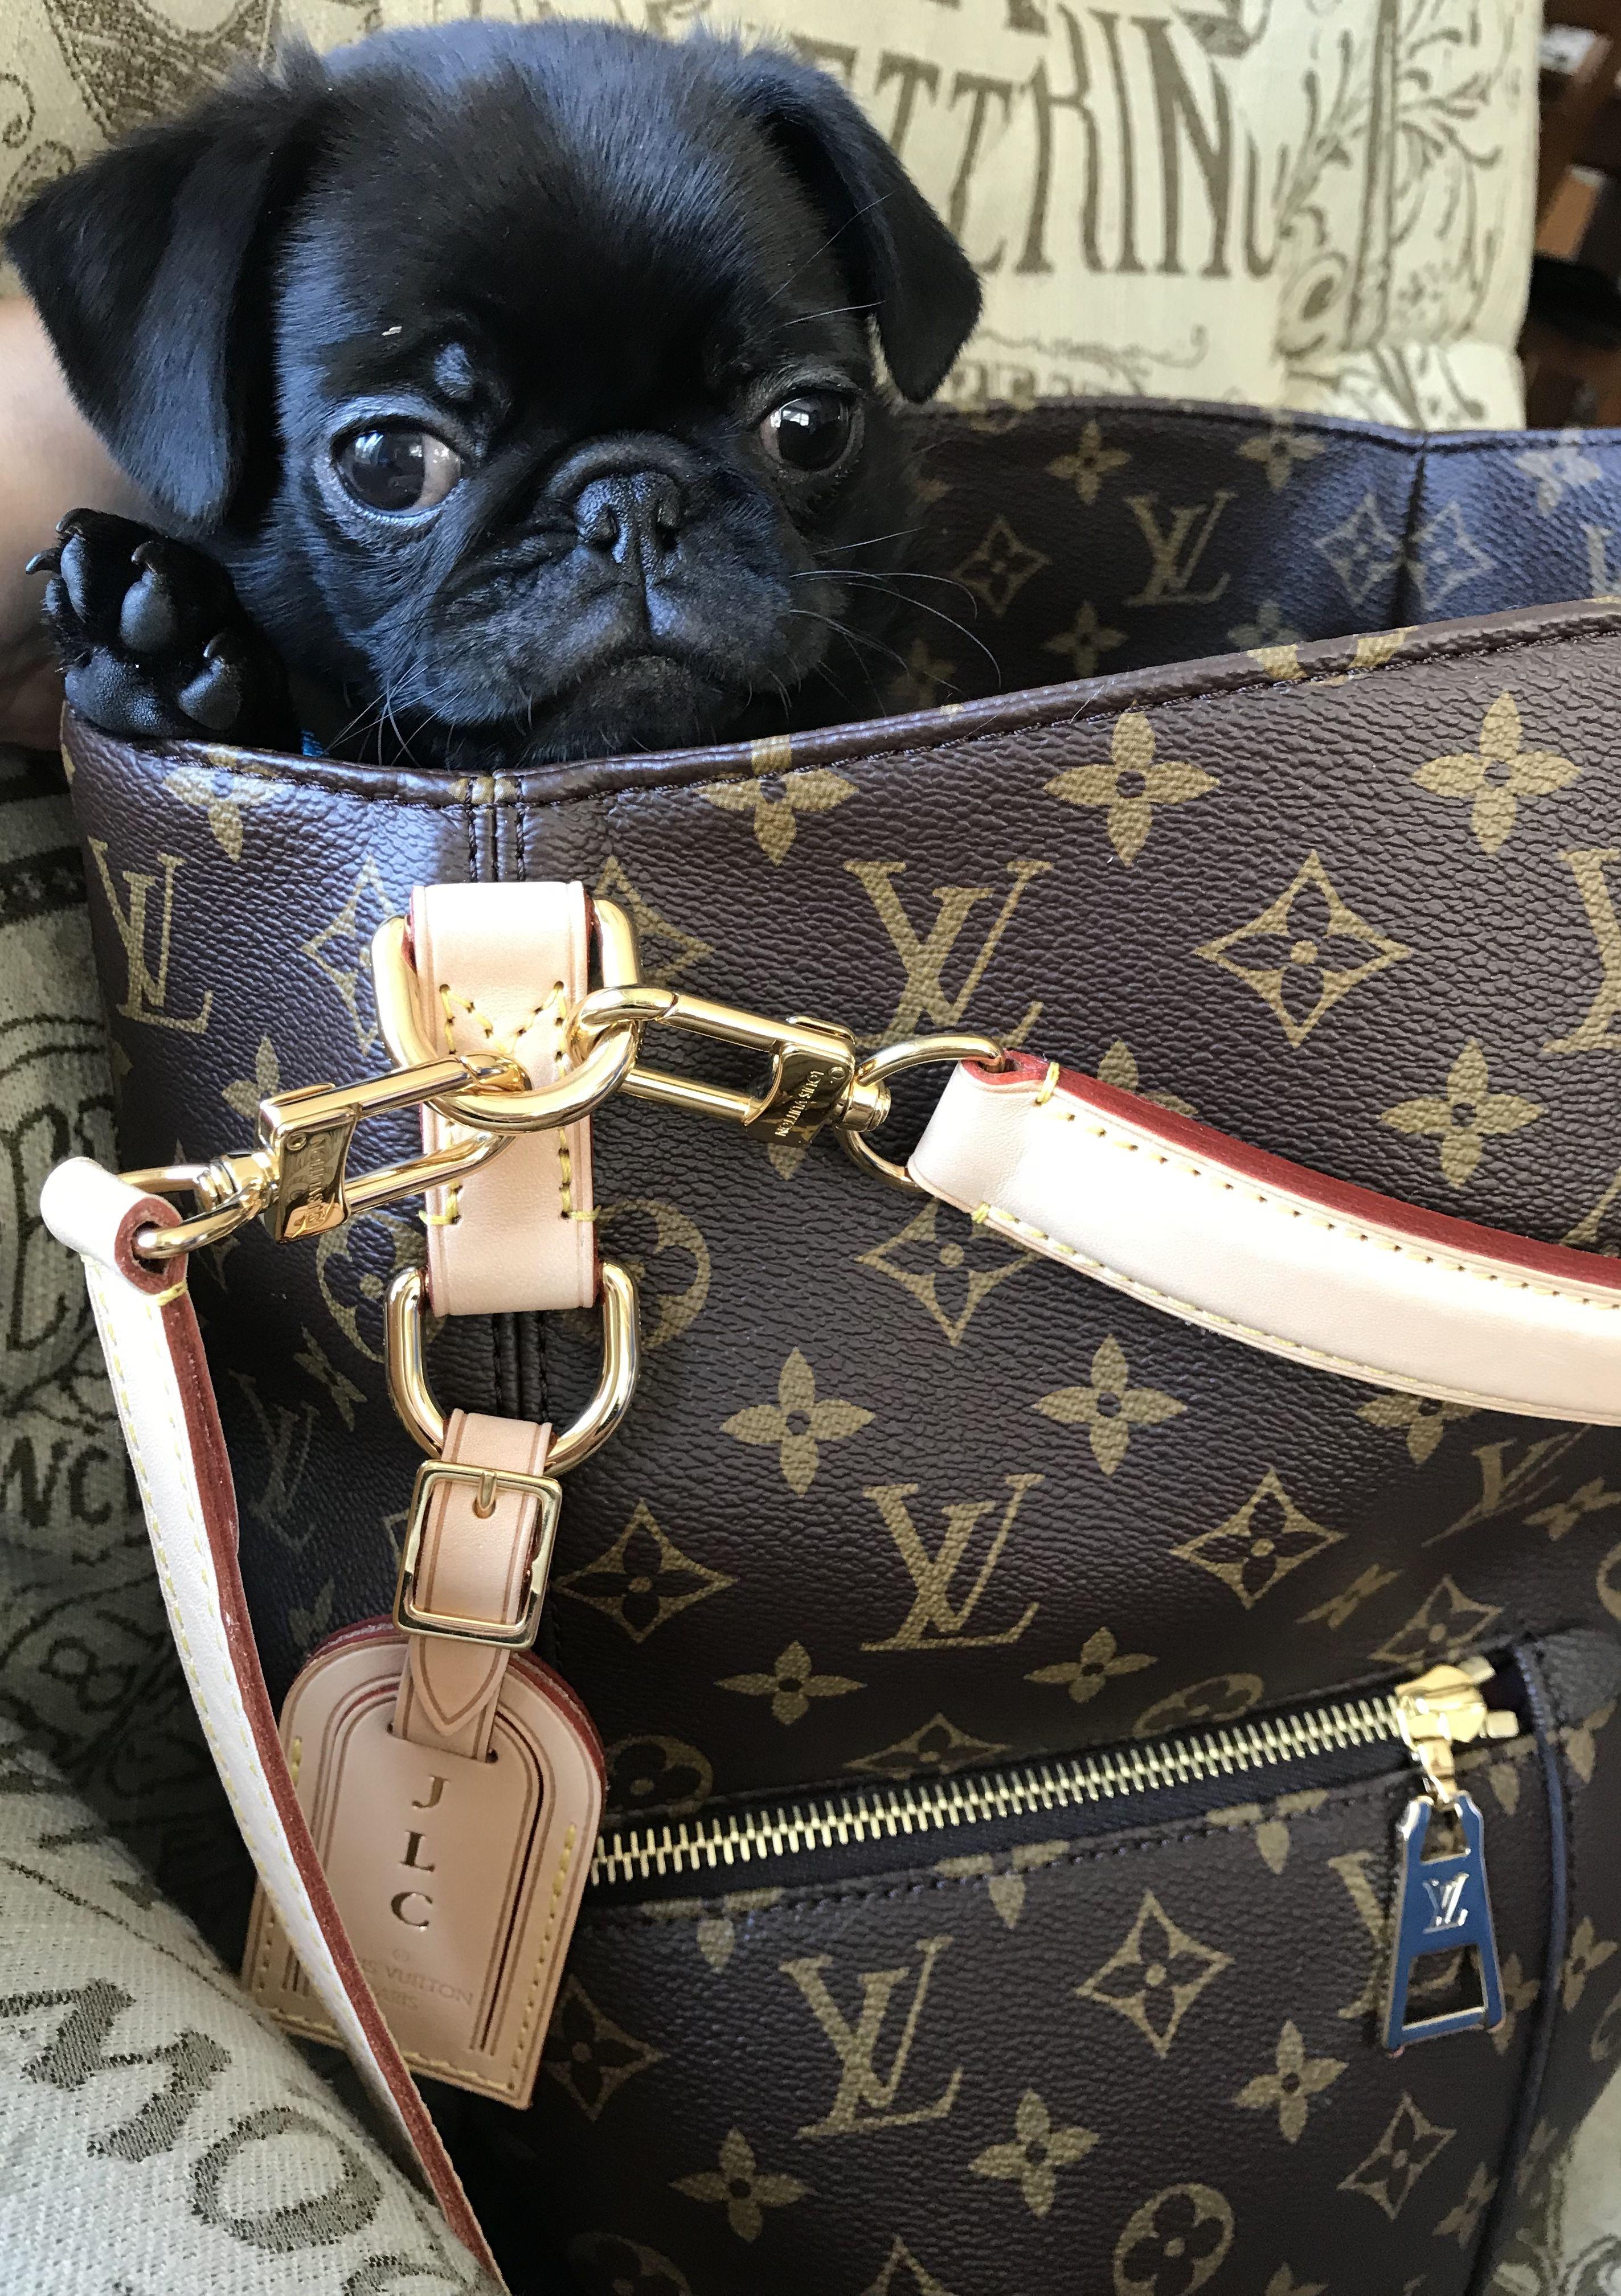 Pug In A Purse My Black Pug Puppy Relaxing In My Louis Vuitton Melie In Monogram Black Pug Louis Vuitton Louis Vuitton Monogram